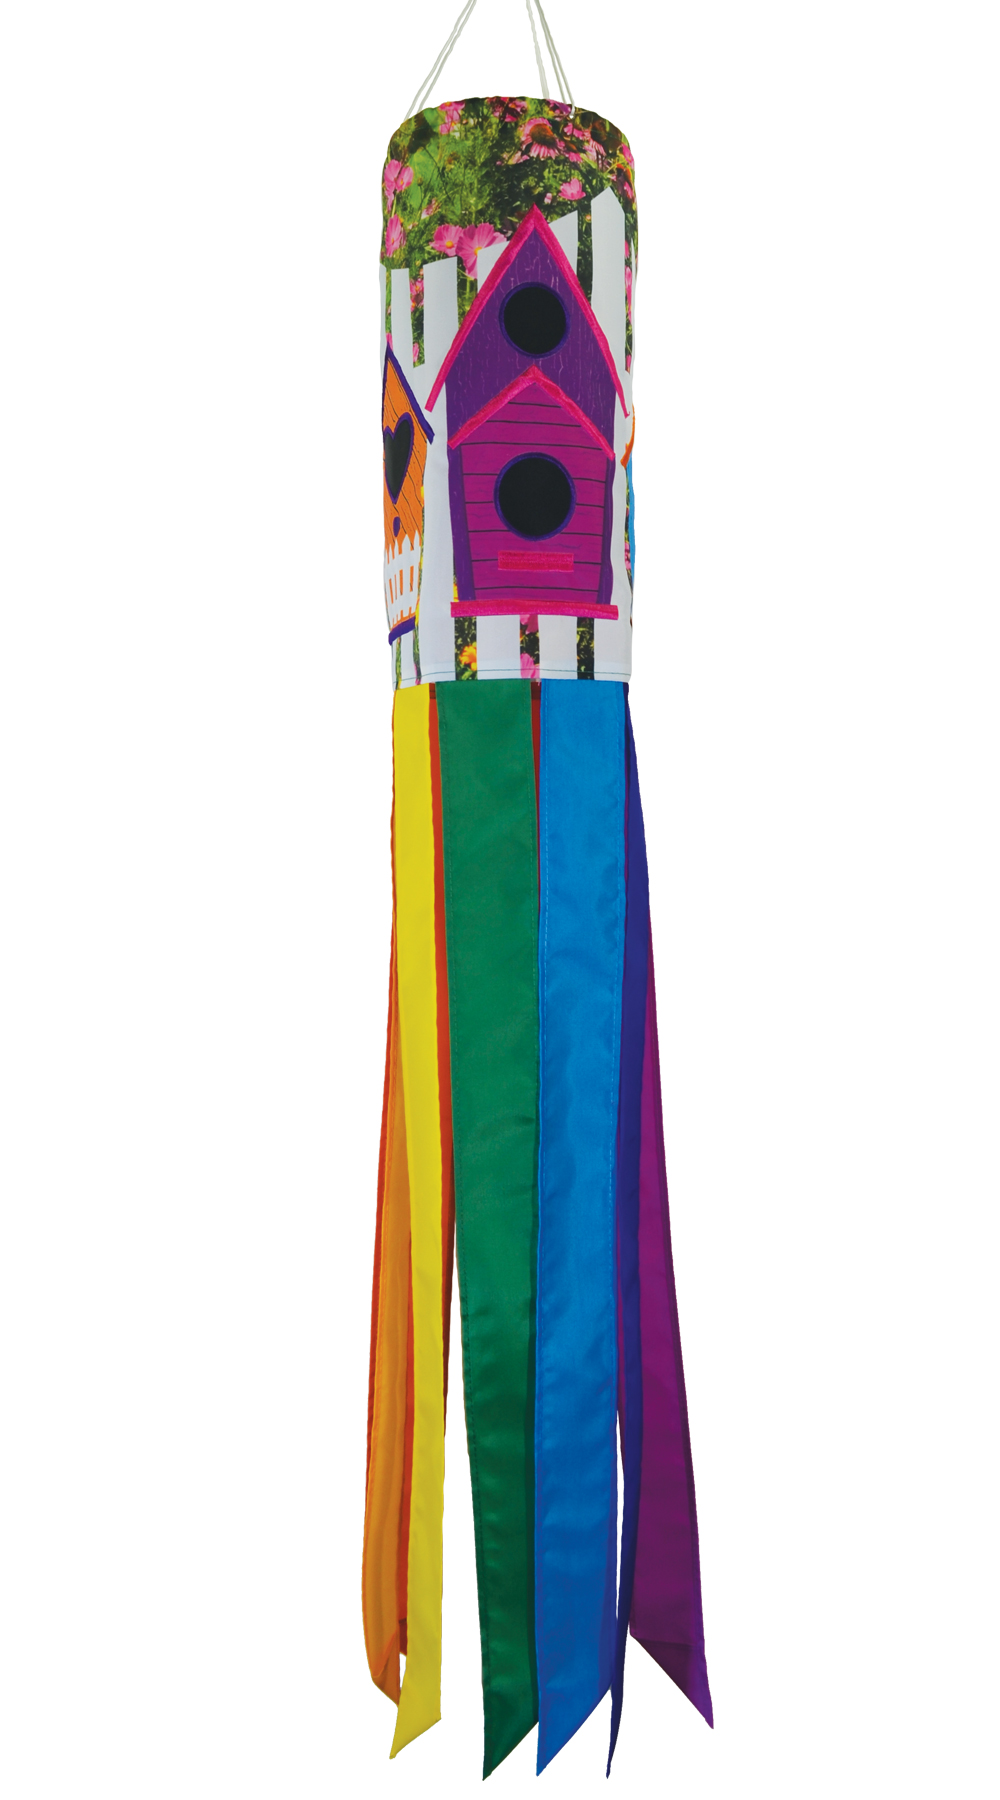 Birdhouse 40 inch Windsock